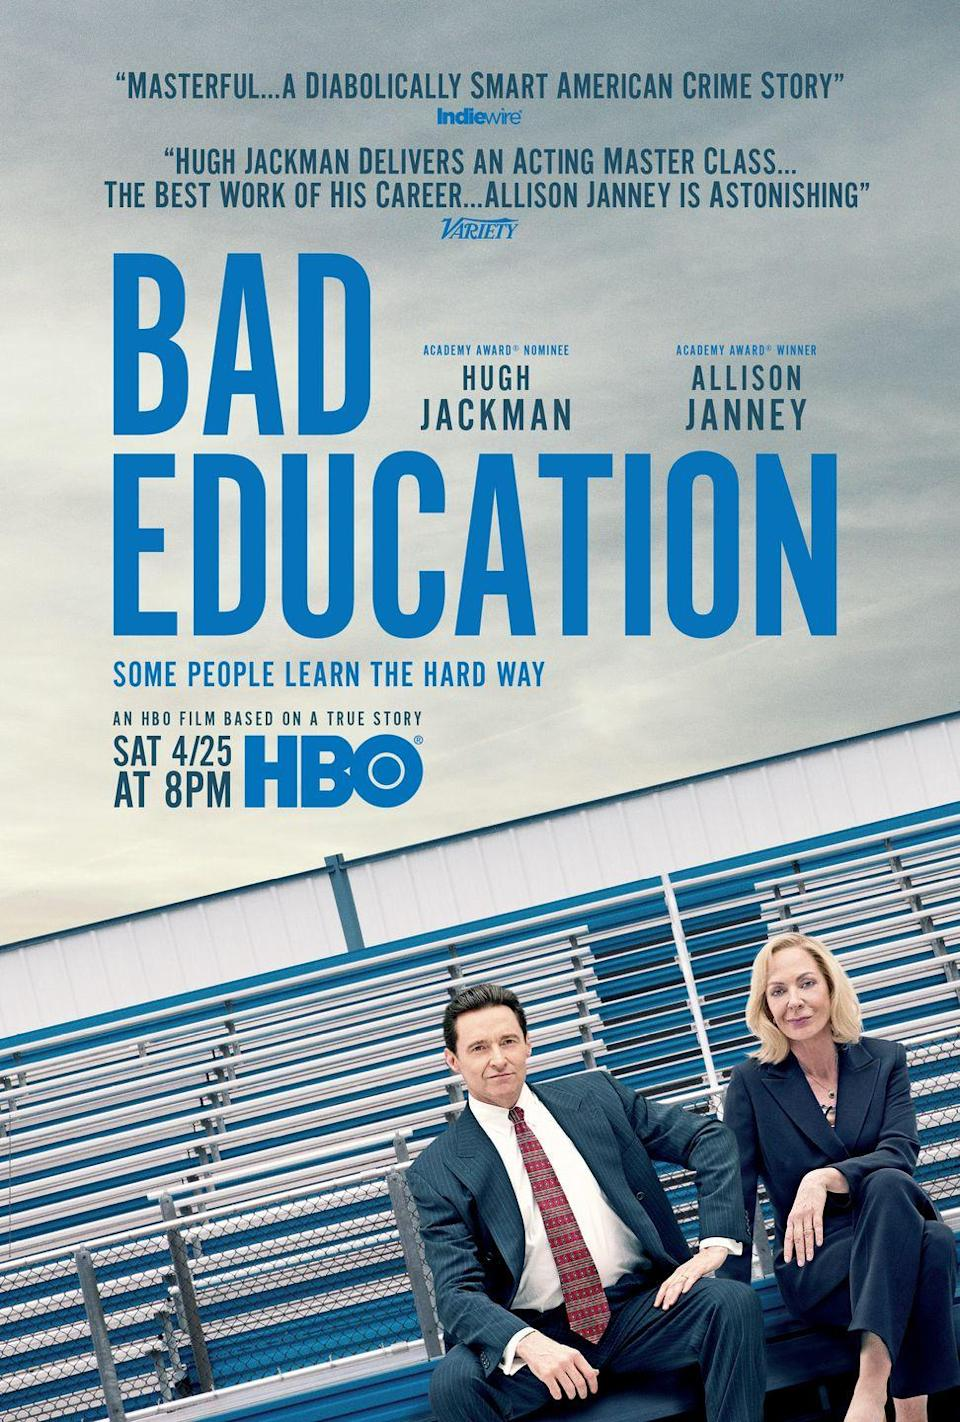 """<p><em><a href=""""http://www.womenshealthmag.com/life/a32227292/bad-education-hbo-frank-tassone-true-story/"""" rel=""""nofollow noopener"""" target=""""_blank"""" data-ylk=""""slk:Bad Education"""" class=""""link rapid-noclick-resp"""">Bad Education</a></em> tells the wild true story of the largest public school embezzlement scandal in American history, which brought down a superstar superintendent, played by Hugh Jackman, and his complicit assistant, played by Allison Janney.</p><p><a class=""""link rapid-noclick-resp"""" href=""""https://go.redirectingat.com?id=74968X1596630&url=https%3A%2F%2Fwww.hulu.com%2Fmovie%2Fbad-education-2718f707-01ba-49a8-a689-a3ede02b9a1d%3Fentity_id%3D2718f707-01ba-49a8-a689-a3ede02b9a1d&sref=https%3A%2F%2Fwww.redbookmag.com%2Flife%2Fg36572054%2Fbest-movies-based-on-true-storie1%2F"""" rel=""""nofollow noopener"""" target=""""_blank"""" data-ylk=""""slk:Watch Here"""">Watch Here</a></p>"""